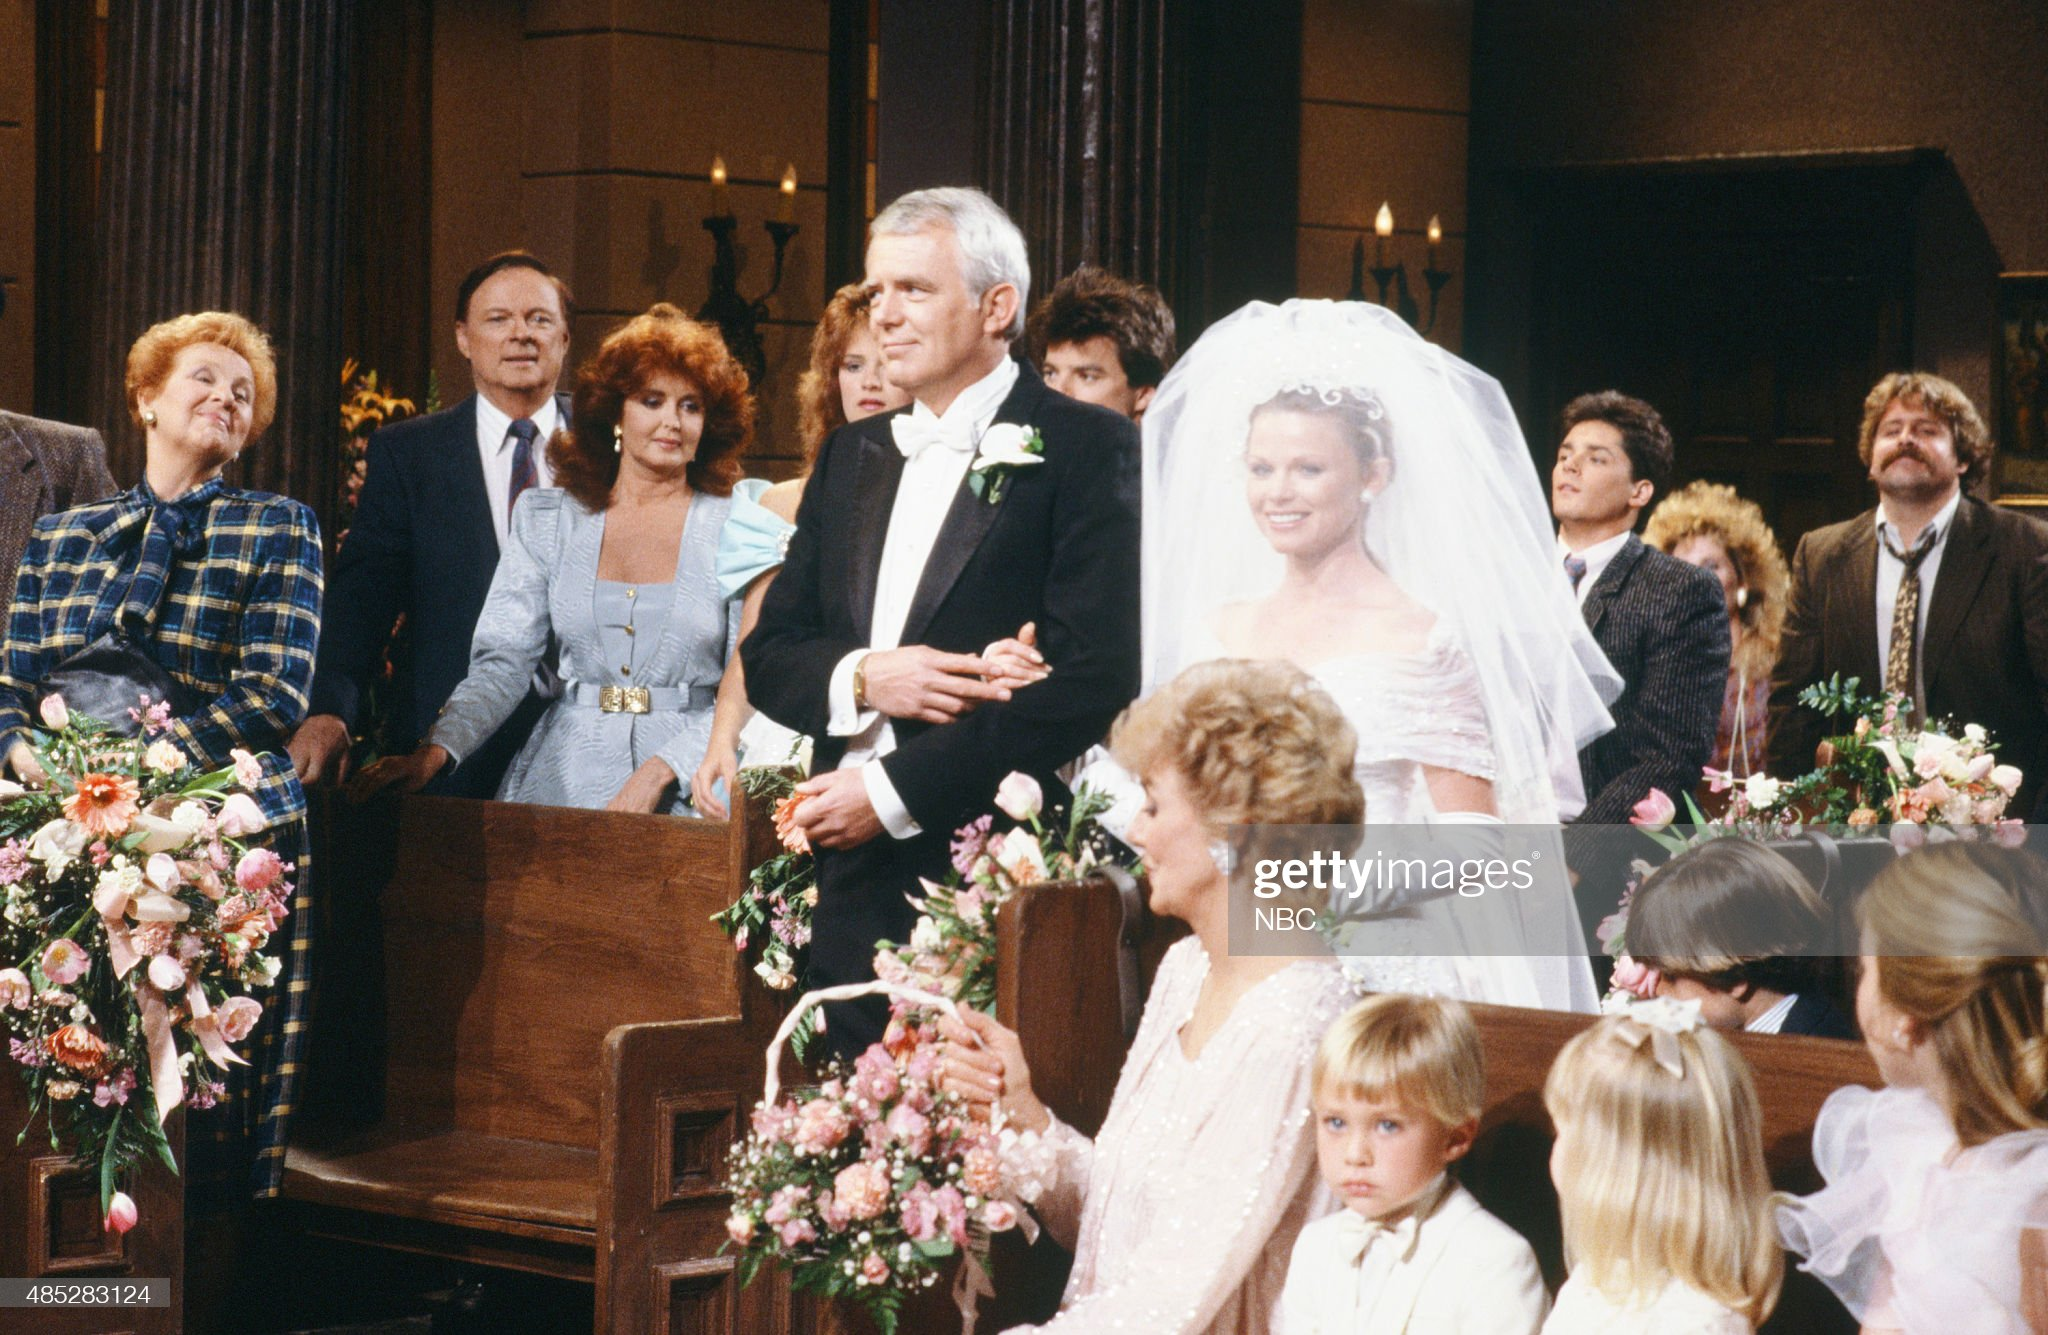 kimberly-brady-shane-donovan-wedding-pictured-suzanne-rogers-as-picture-id485283124